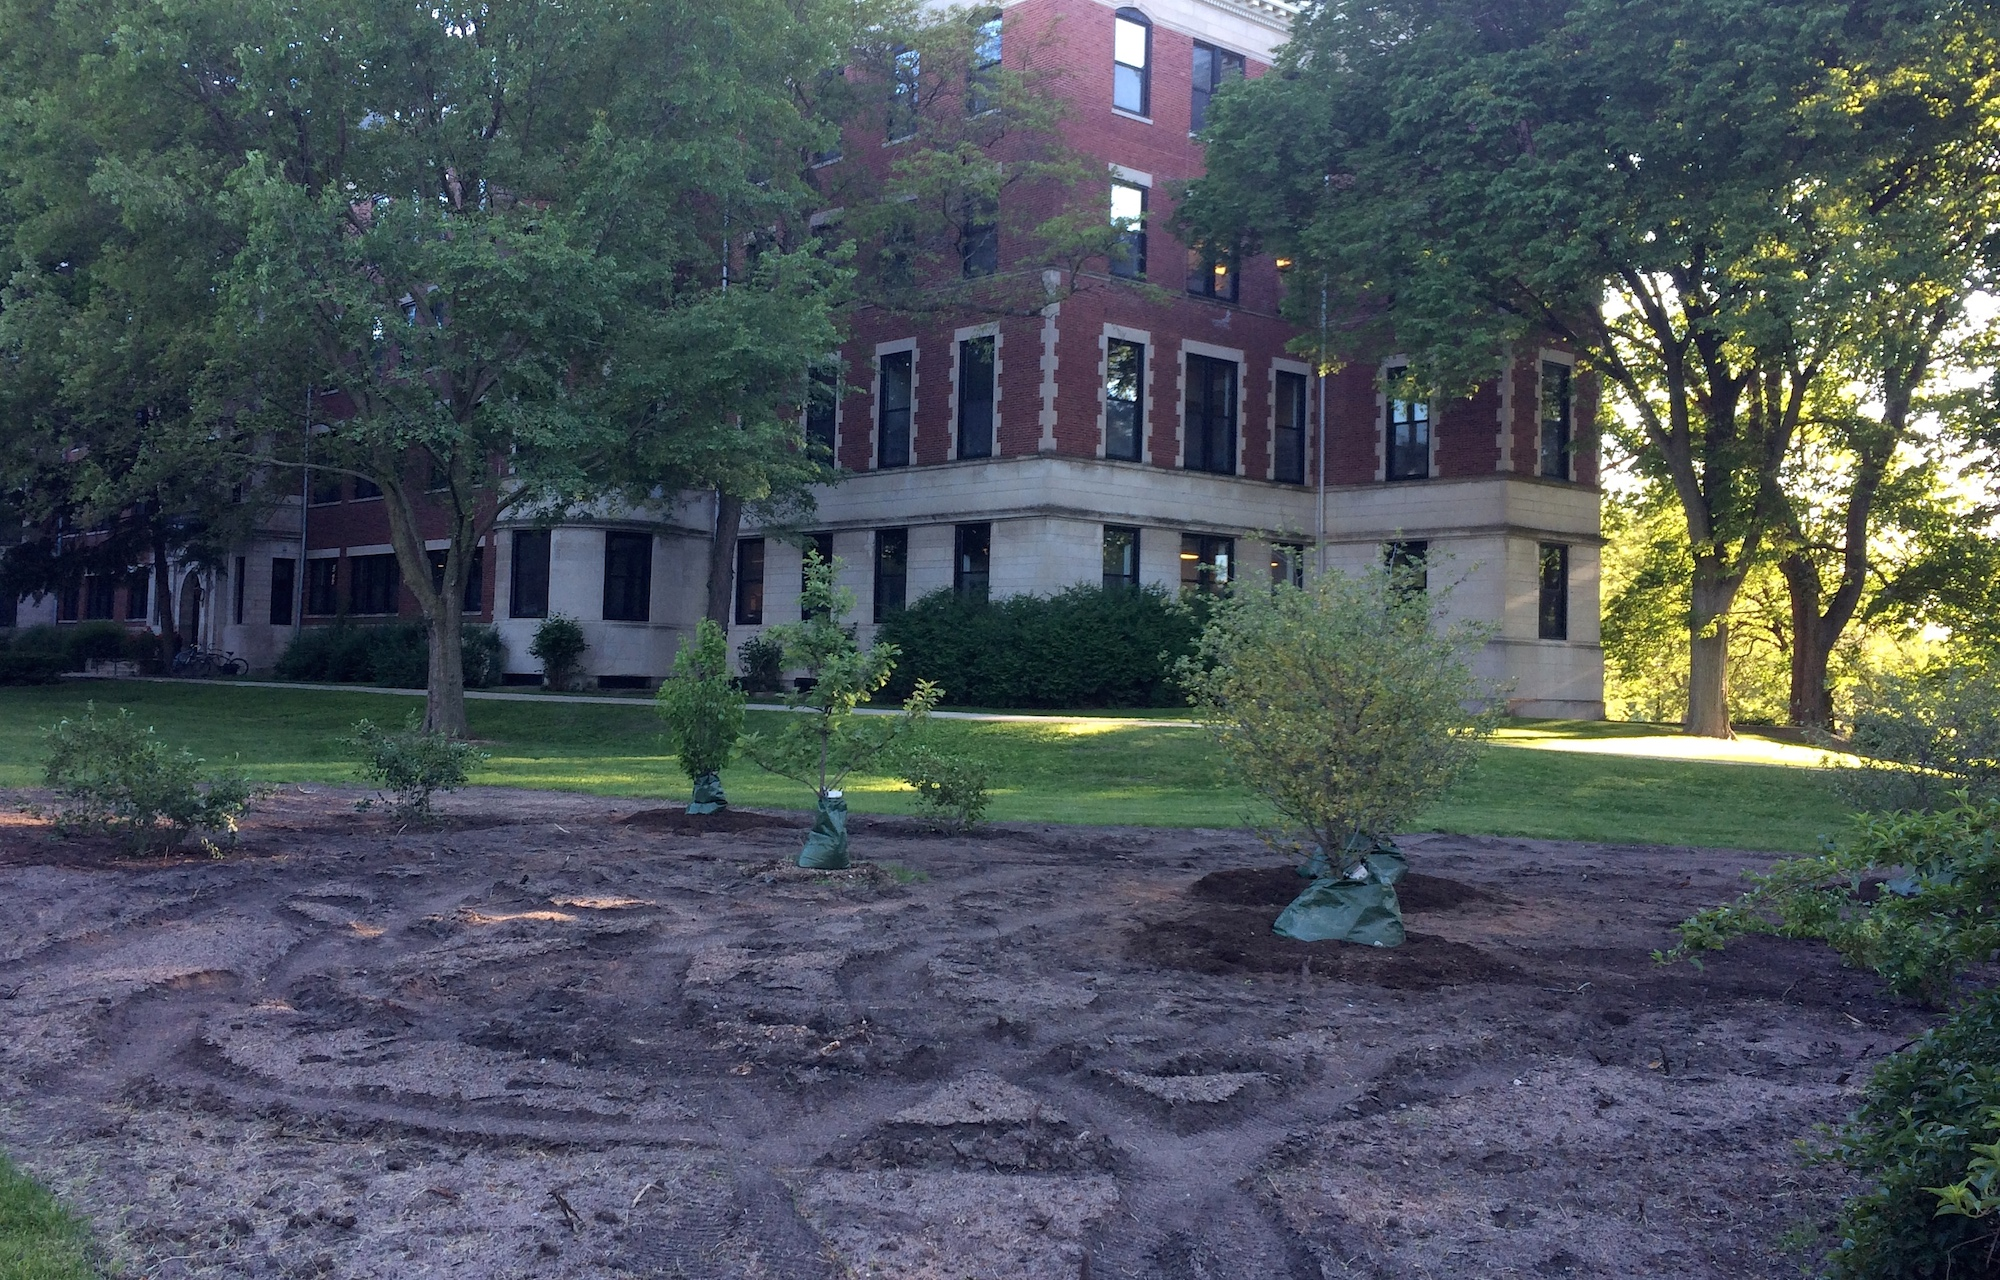 Shrubs and trees have been planted in the Civic Center's bird-friendly garden